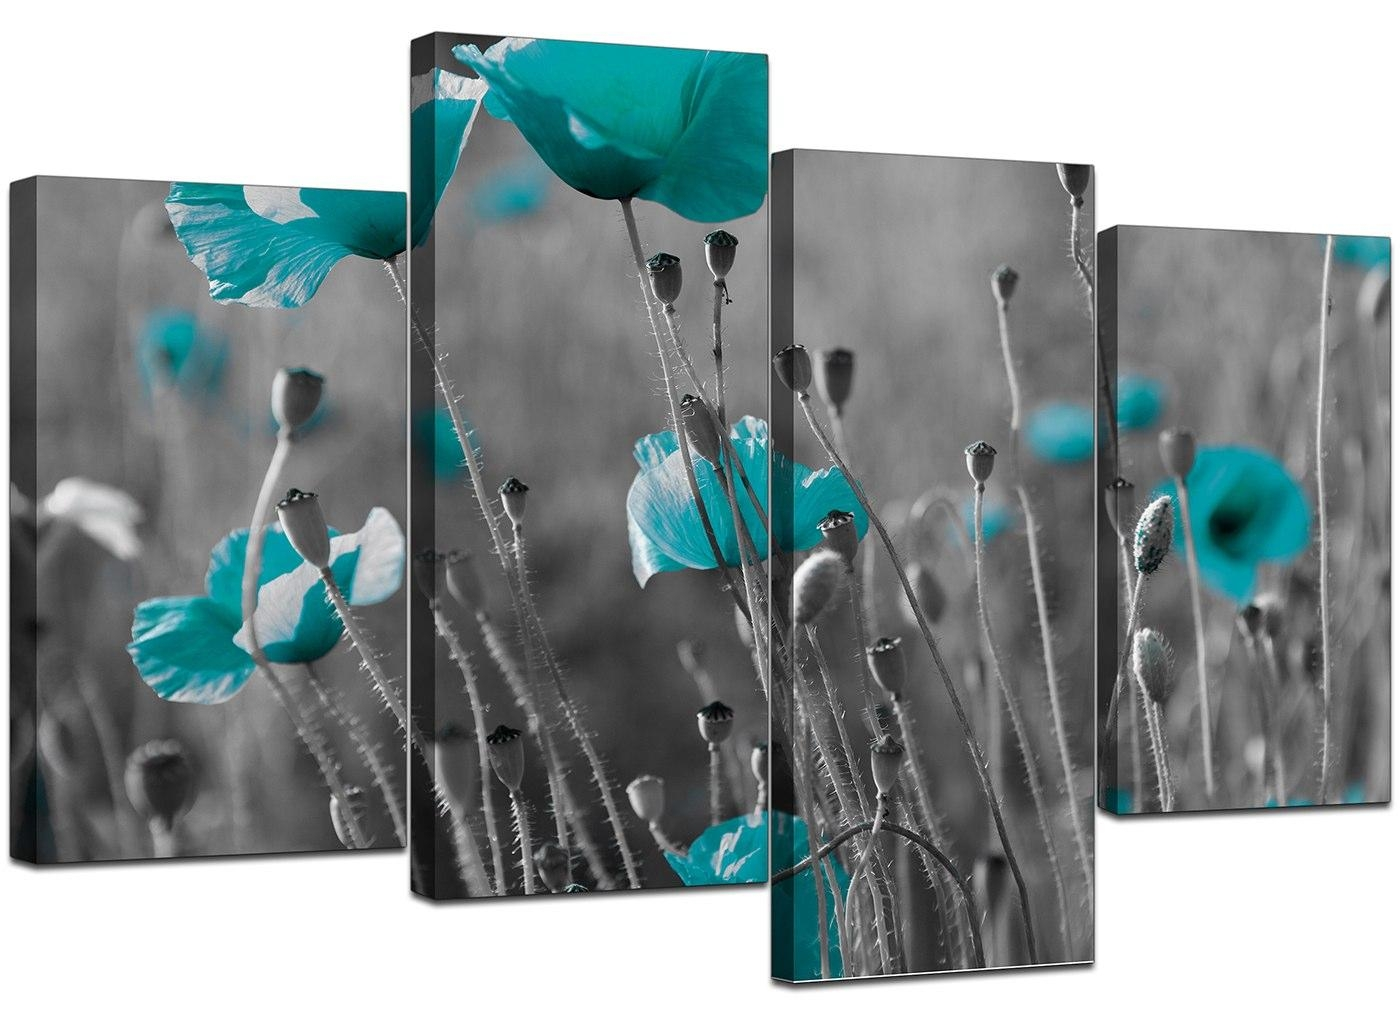 Canvas Art Of Teal Poppies In Black & White For Your Office Throughout Black And Teal Wall Art (View 14 of 20)